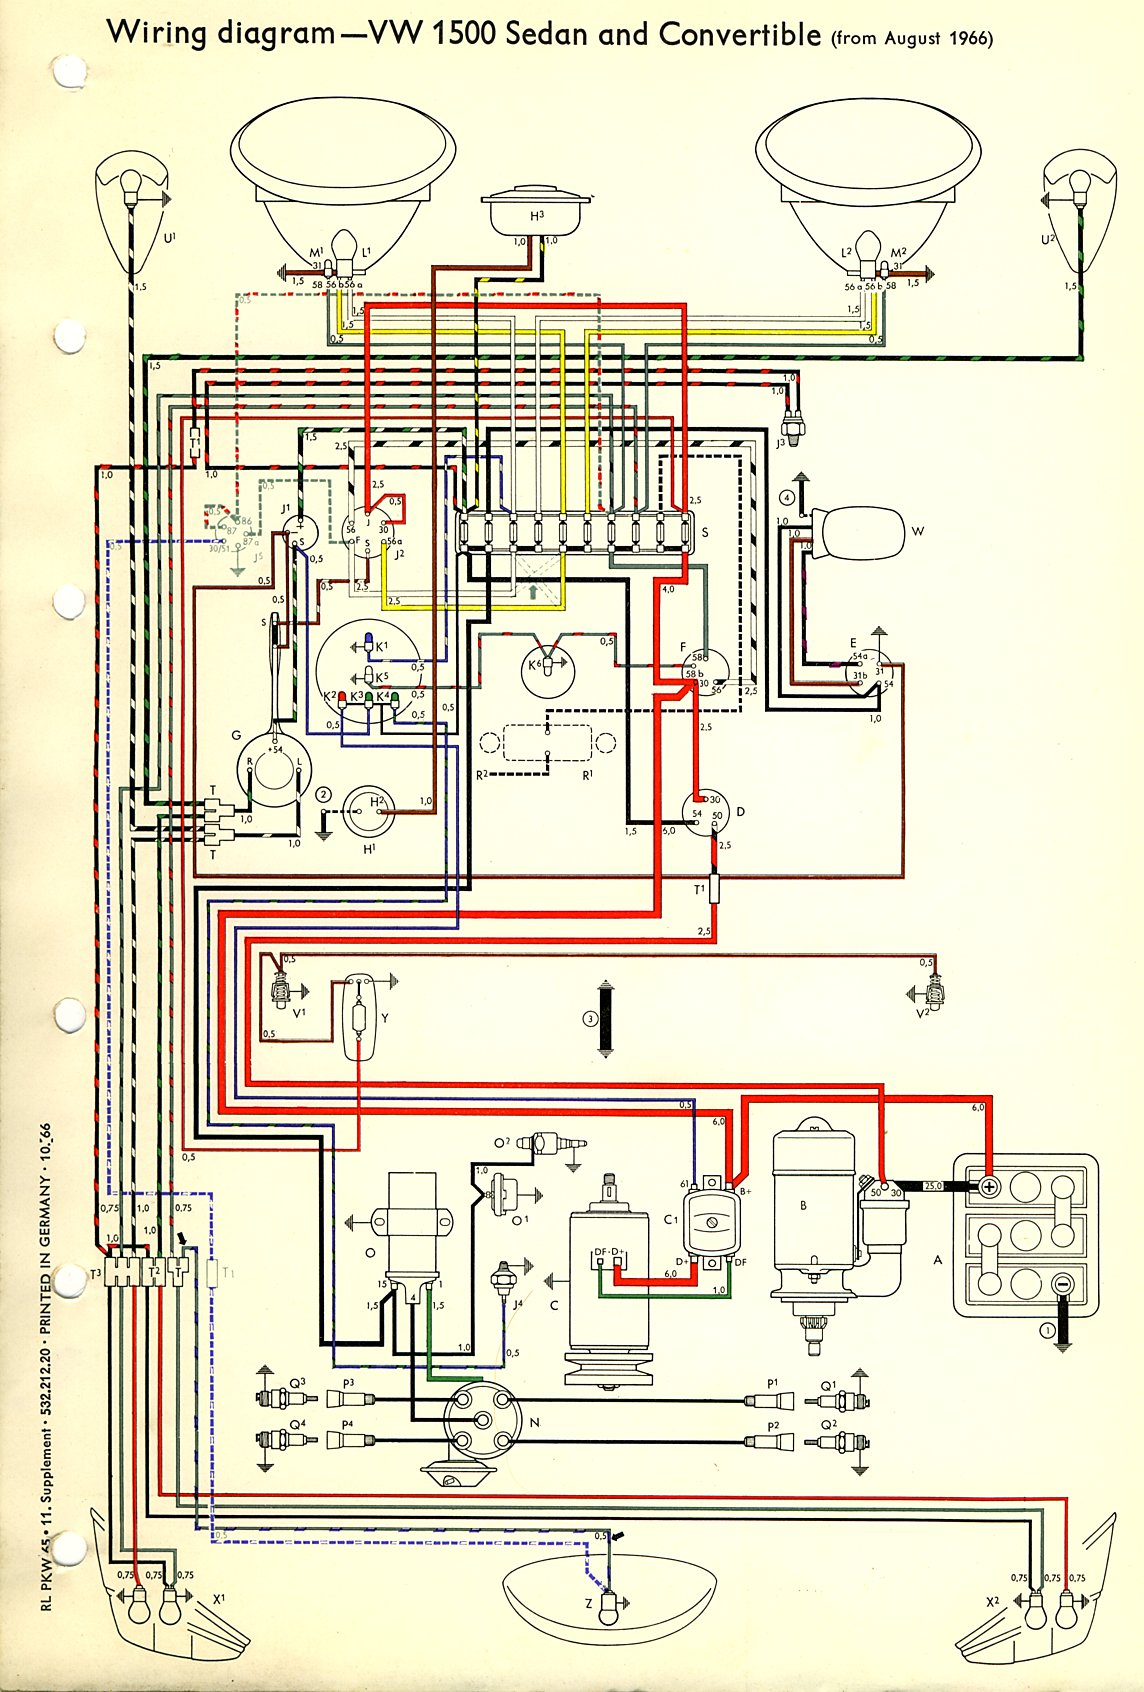 thesamba com type 1 wiring diagrams rh thesamba com 1956 vw bug wiring diagram 1976 VW Beetle Wiring Diagram